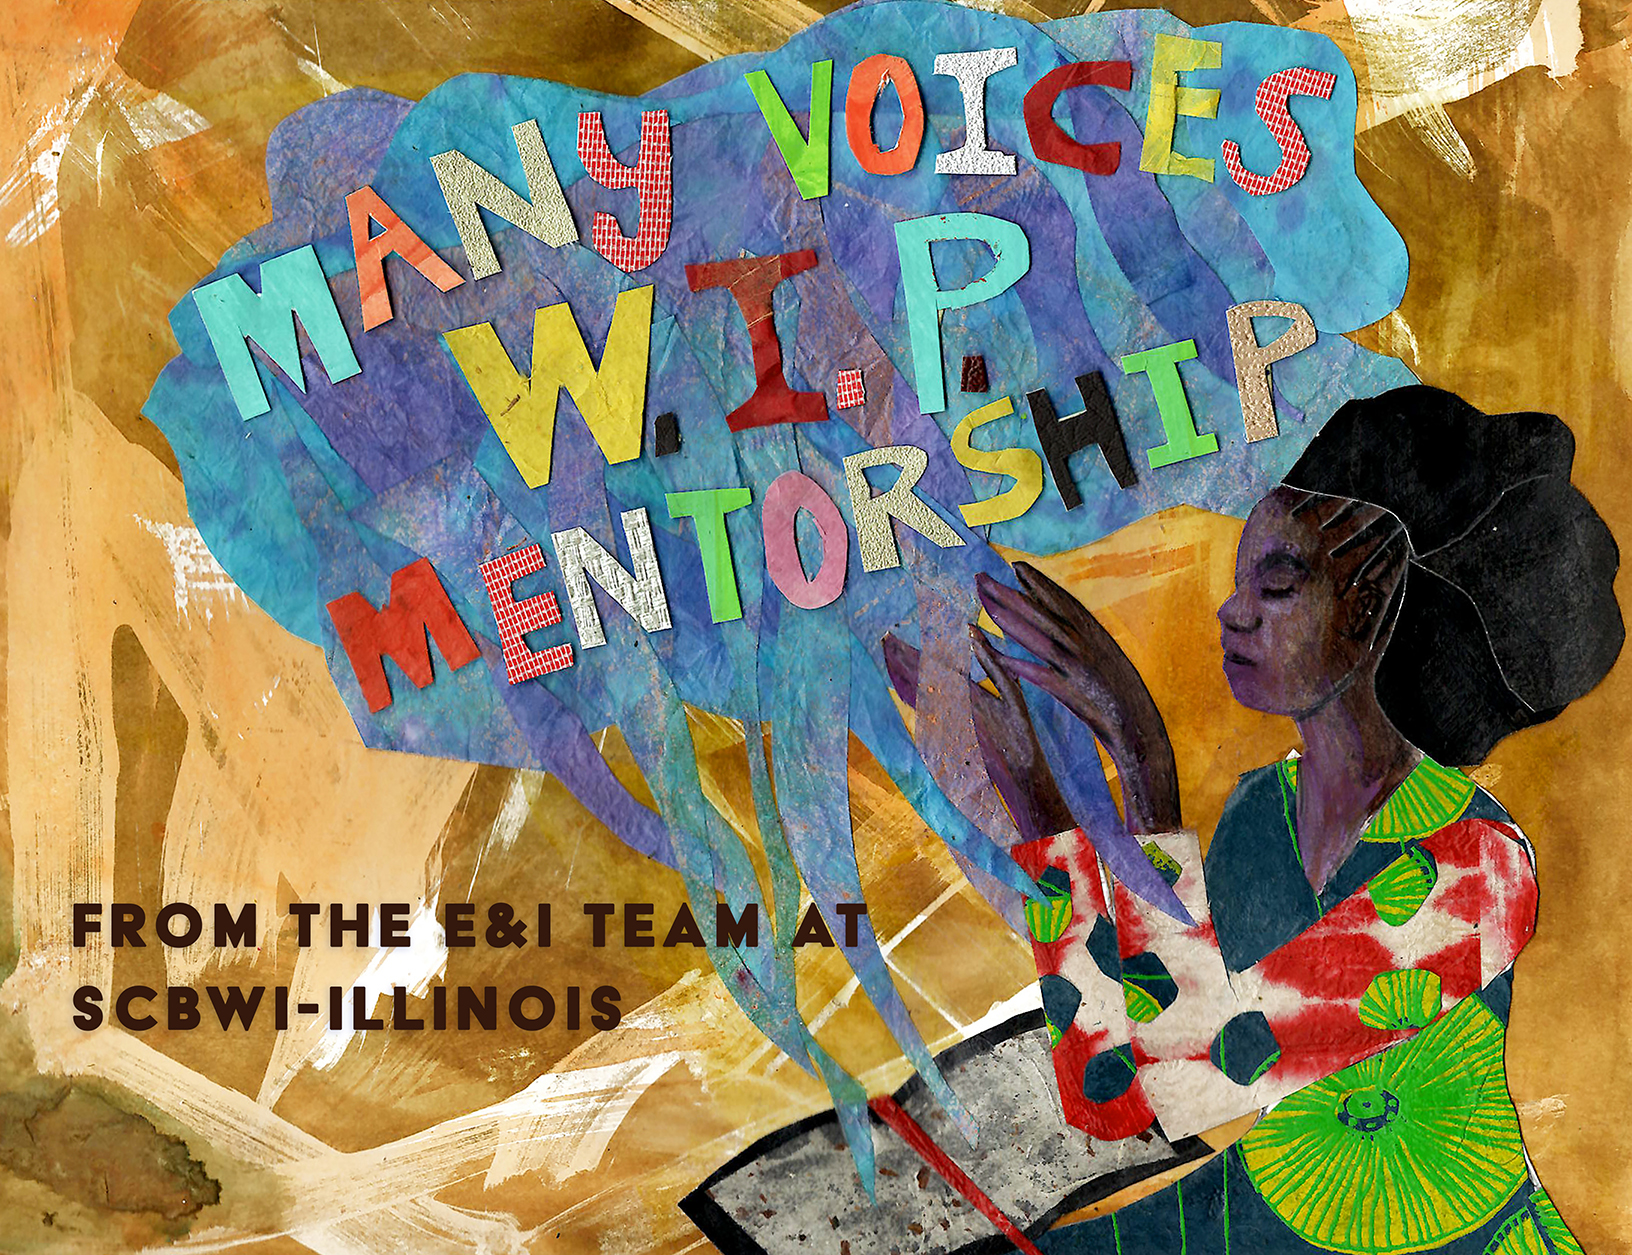 Apply for the SCBWI-IL Many Voices WIP Mentorship with Jan Spivey Glichrist April 1-11, 2021